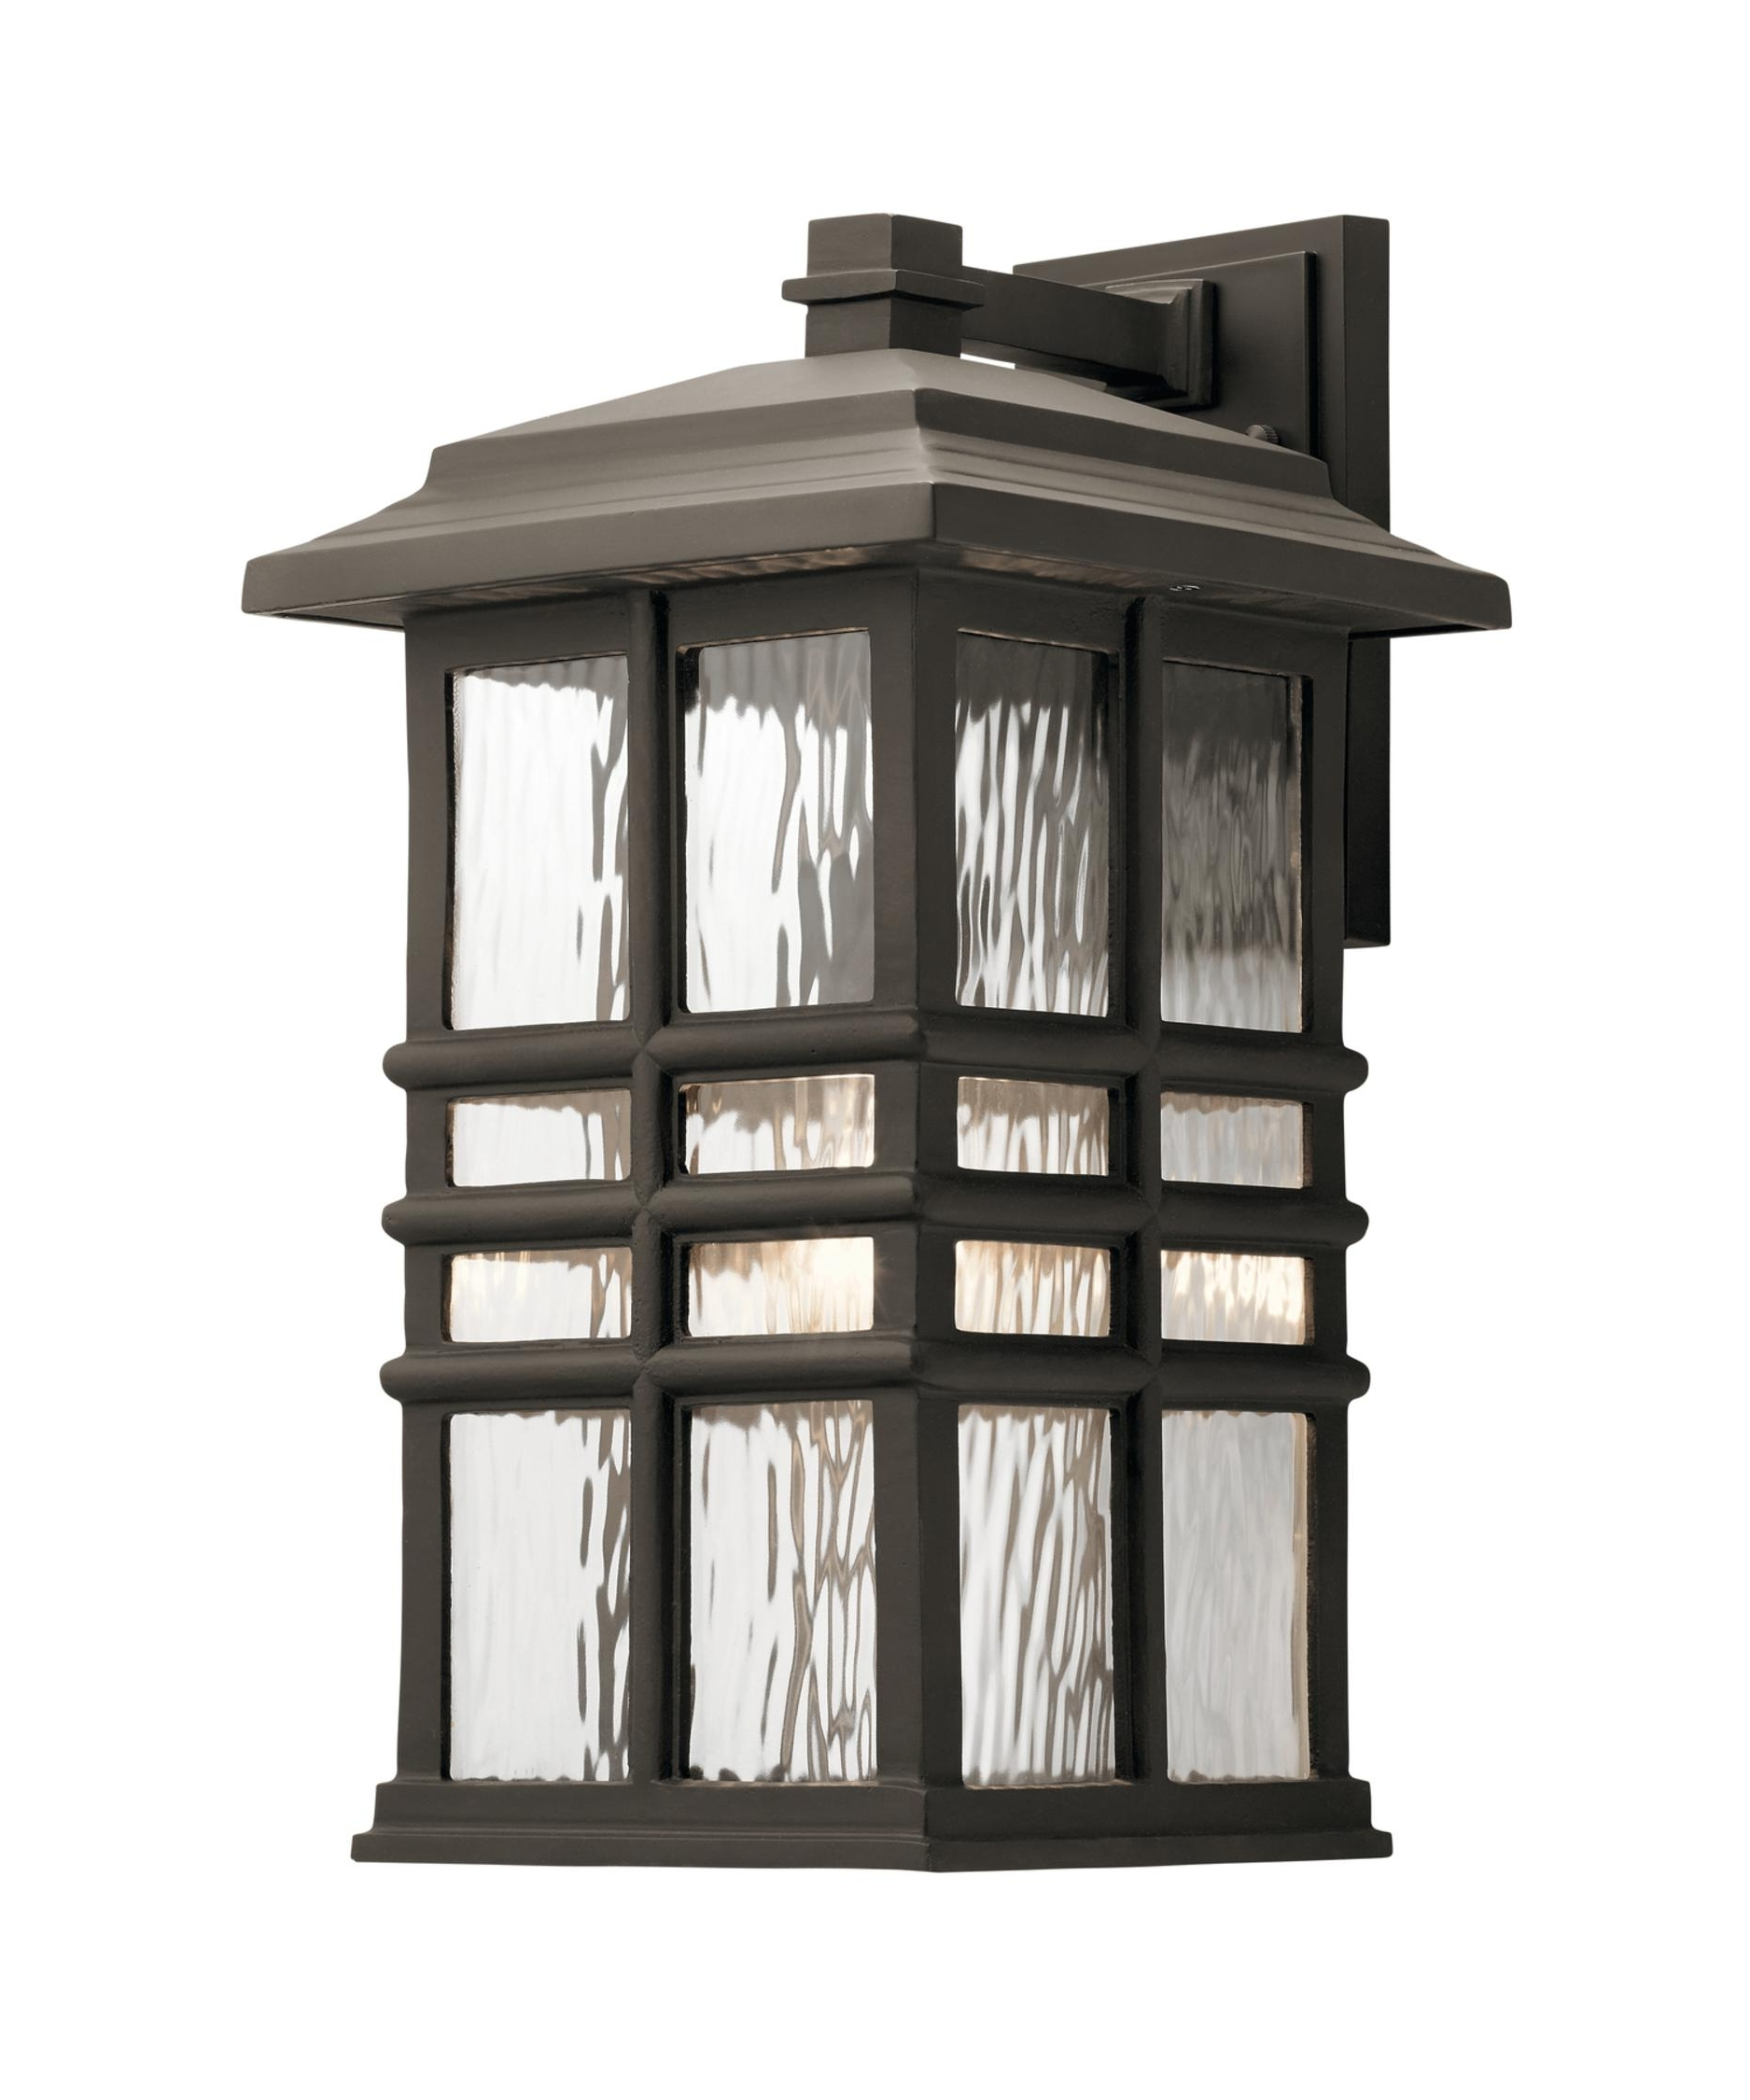 Kichler 49831 Beacon Square 10 Inch Wide 1 Light Outdoor Wall Light Pertaining To Recent Beacon Outdoor Wall Lighting (Gallery 9 of 20)